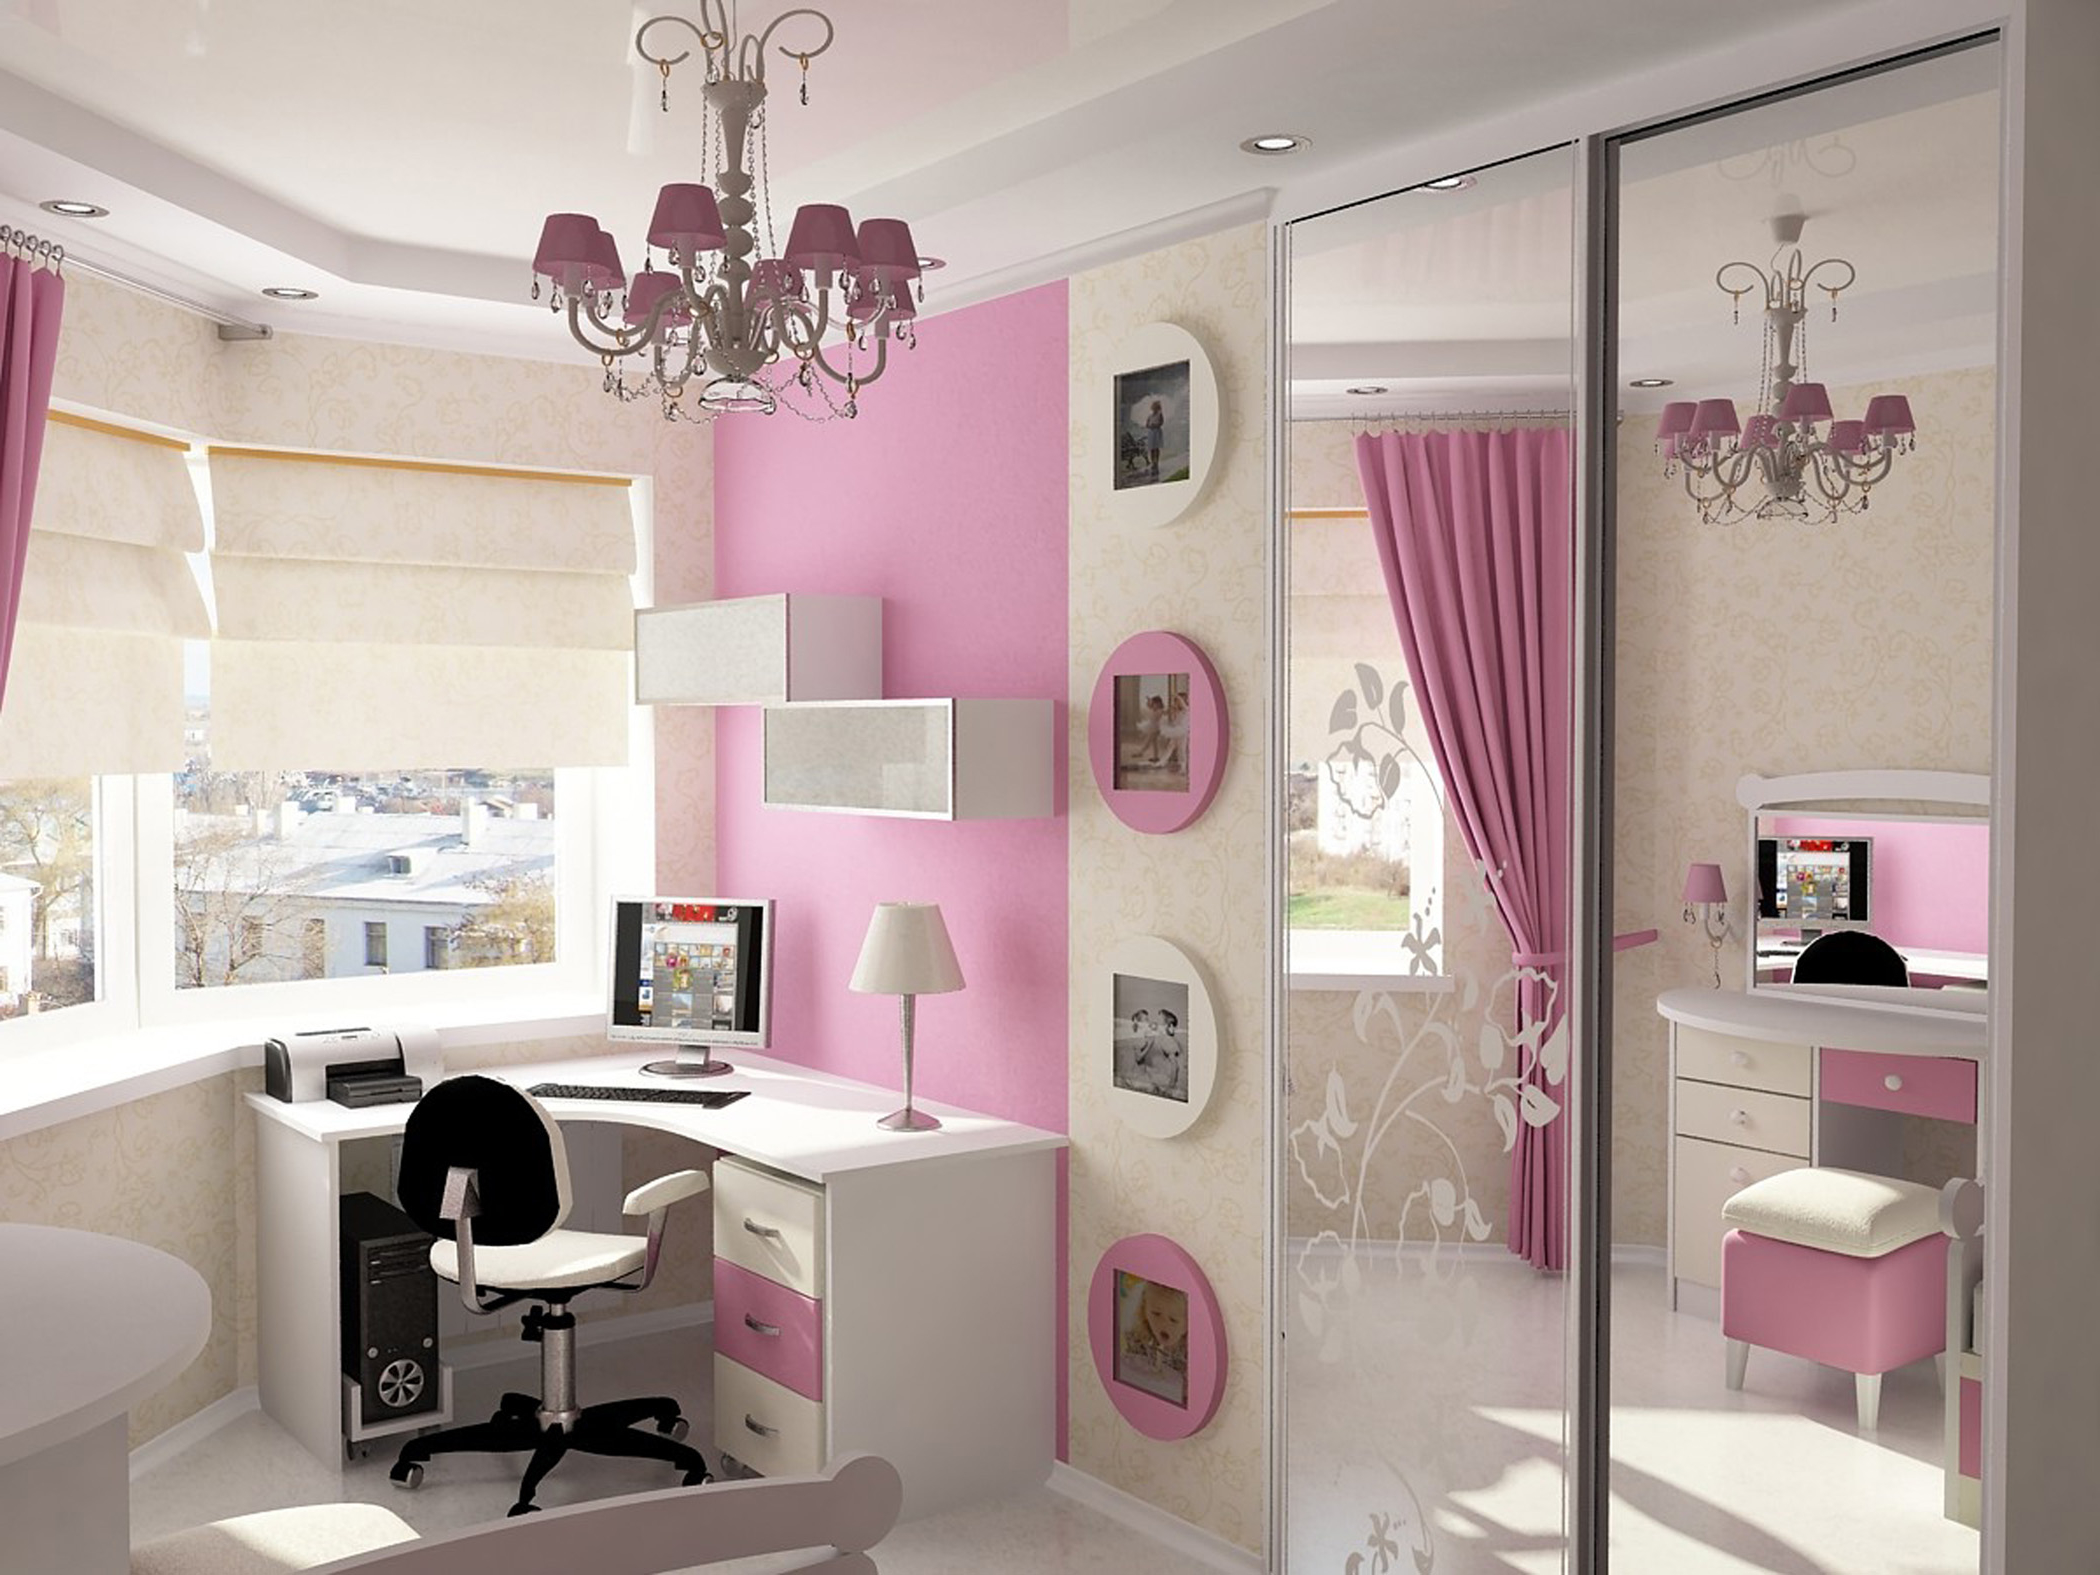 Minimalist Girls Design With White Study Table With White Desk Lamp And Pink Chandelier On The White Ceiling Along With Wardrobe With Sliding Door With Mirror Cool Design Bedroom Ideas (Image 19 of 25)